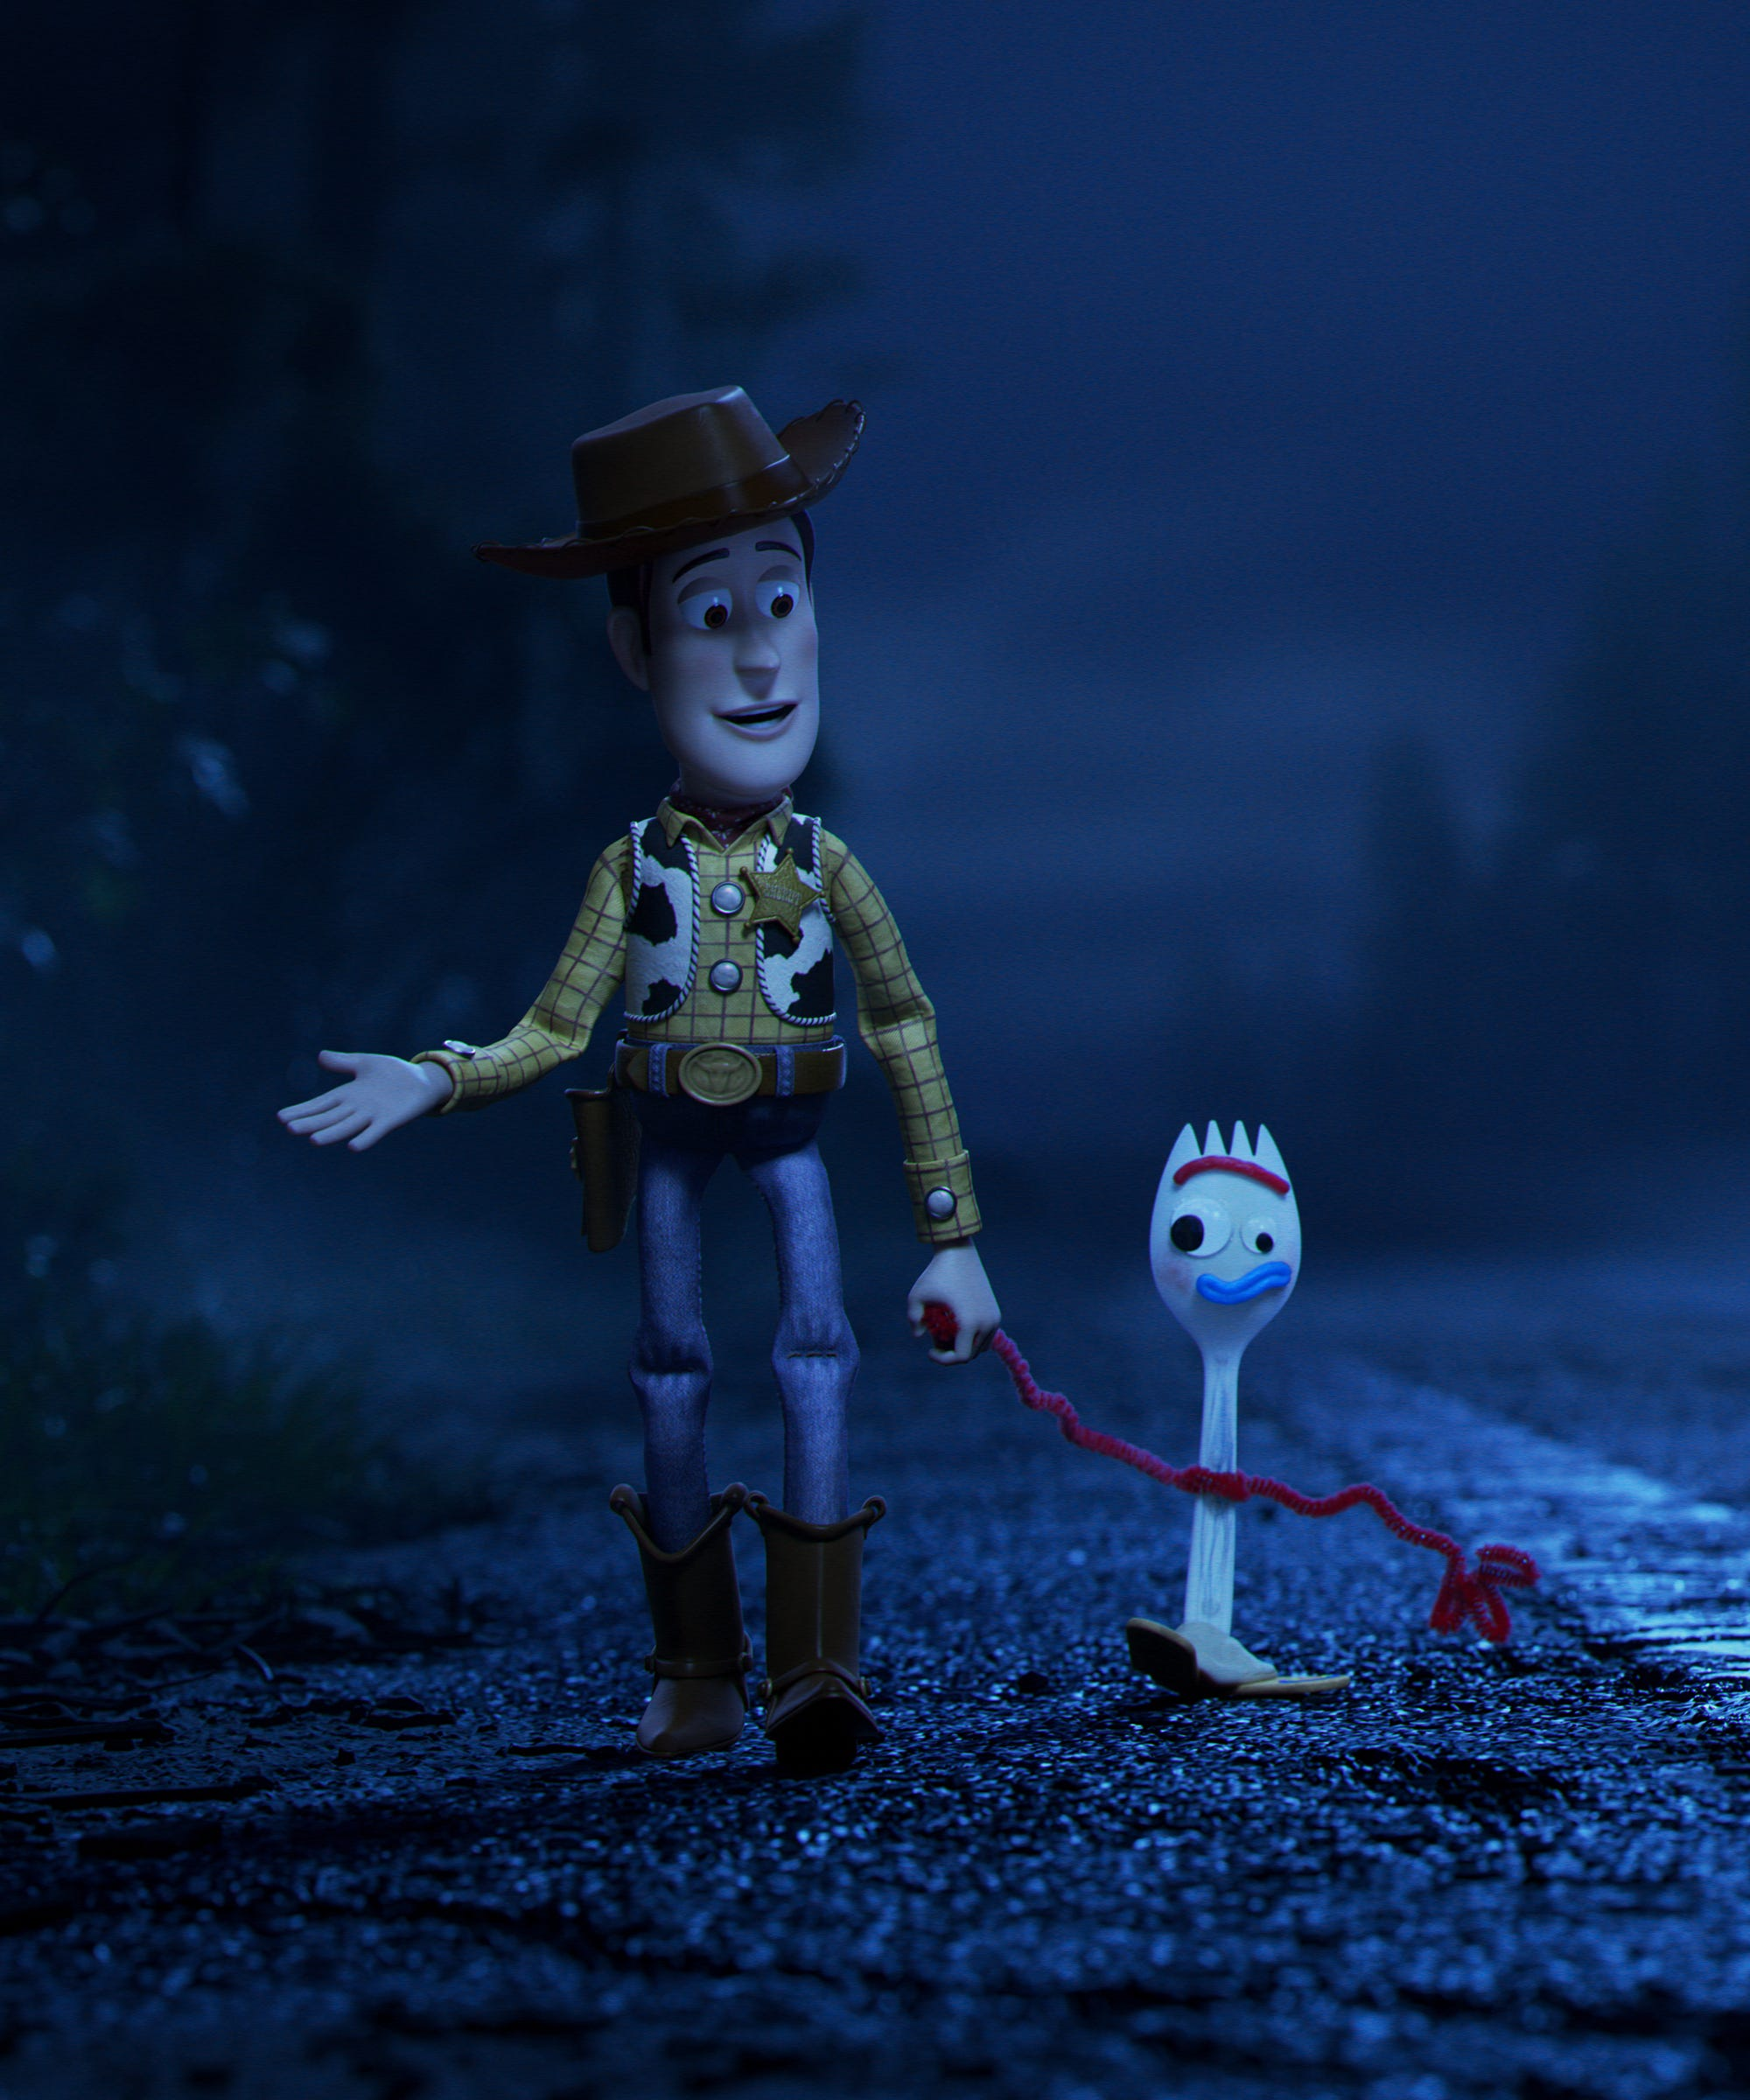 Toy Story 4 Voice Cast Includes So Many Celeb Cameos